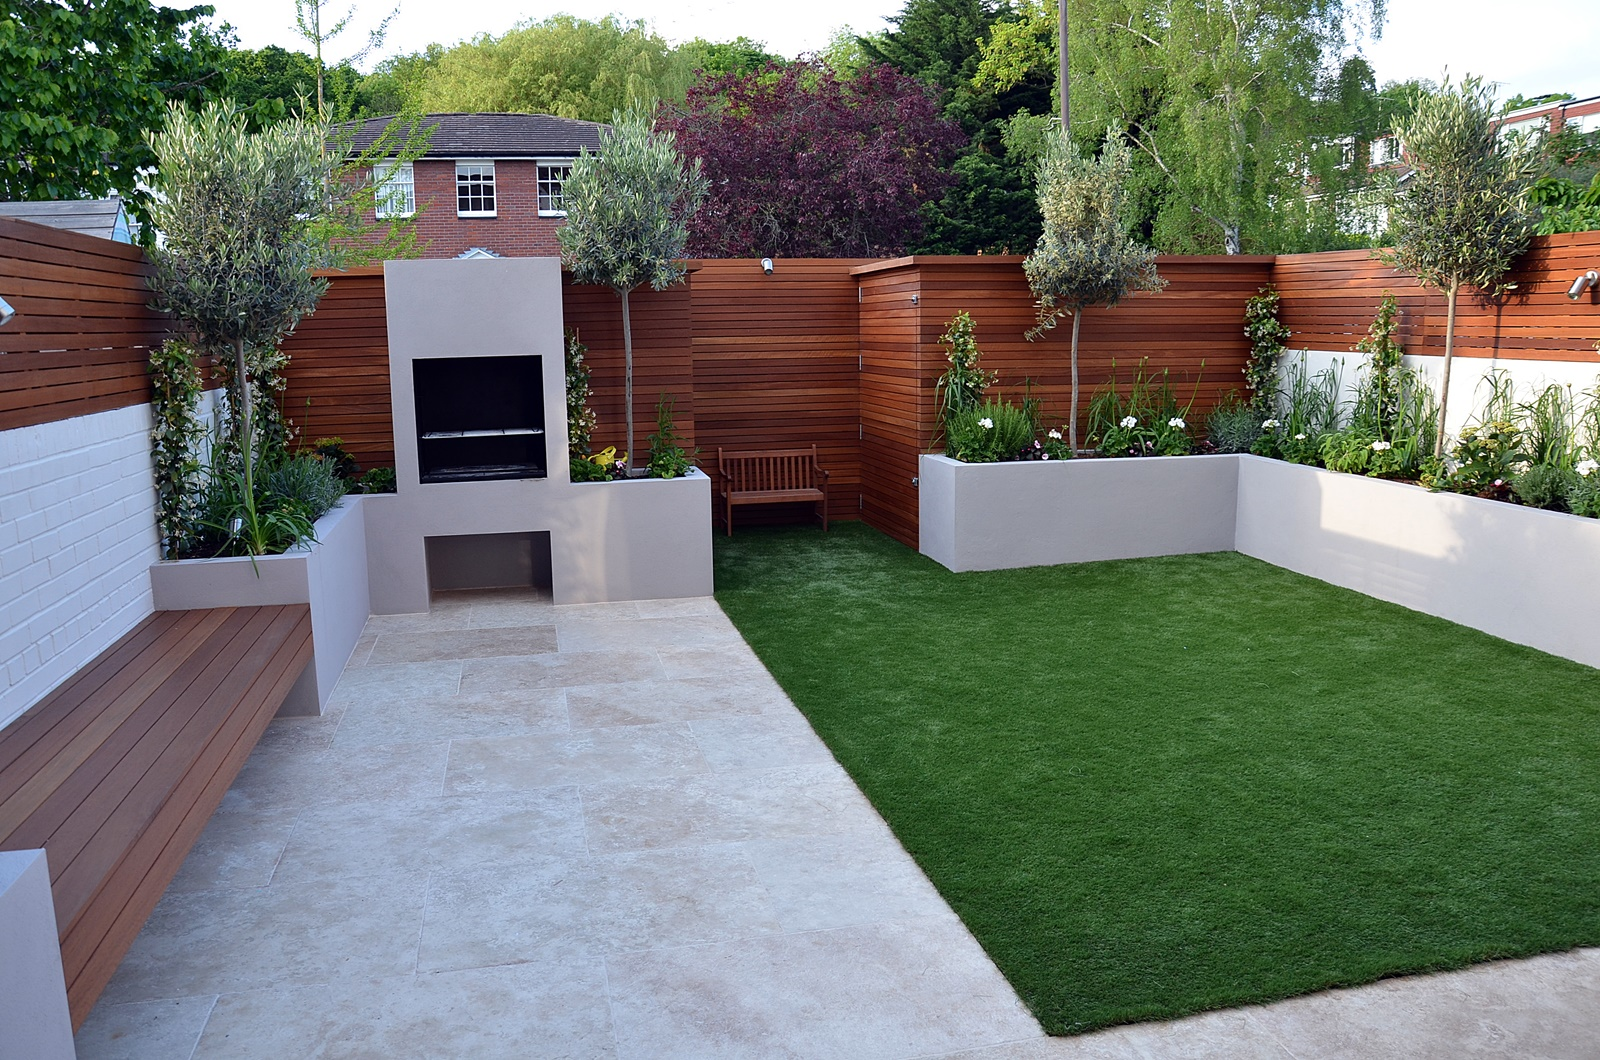 Modern garden design fulham chelsea clapham battersea for Contemporary backyard landscaping ideas